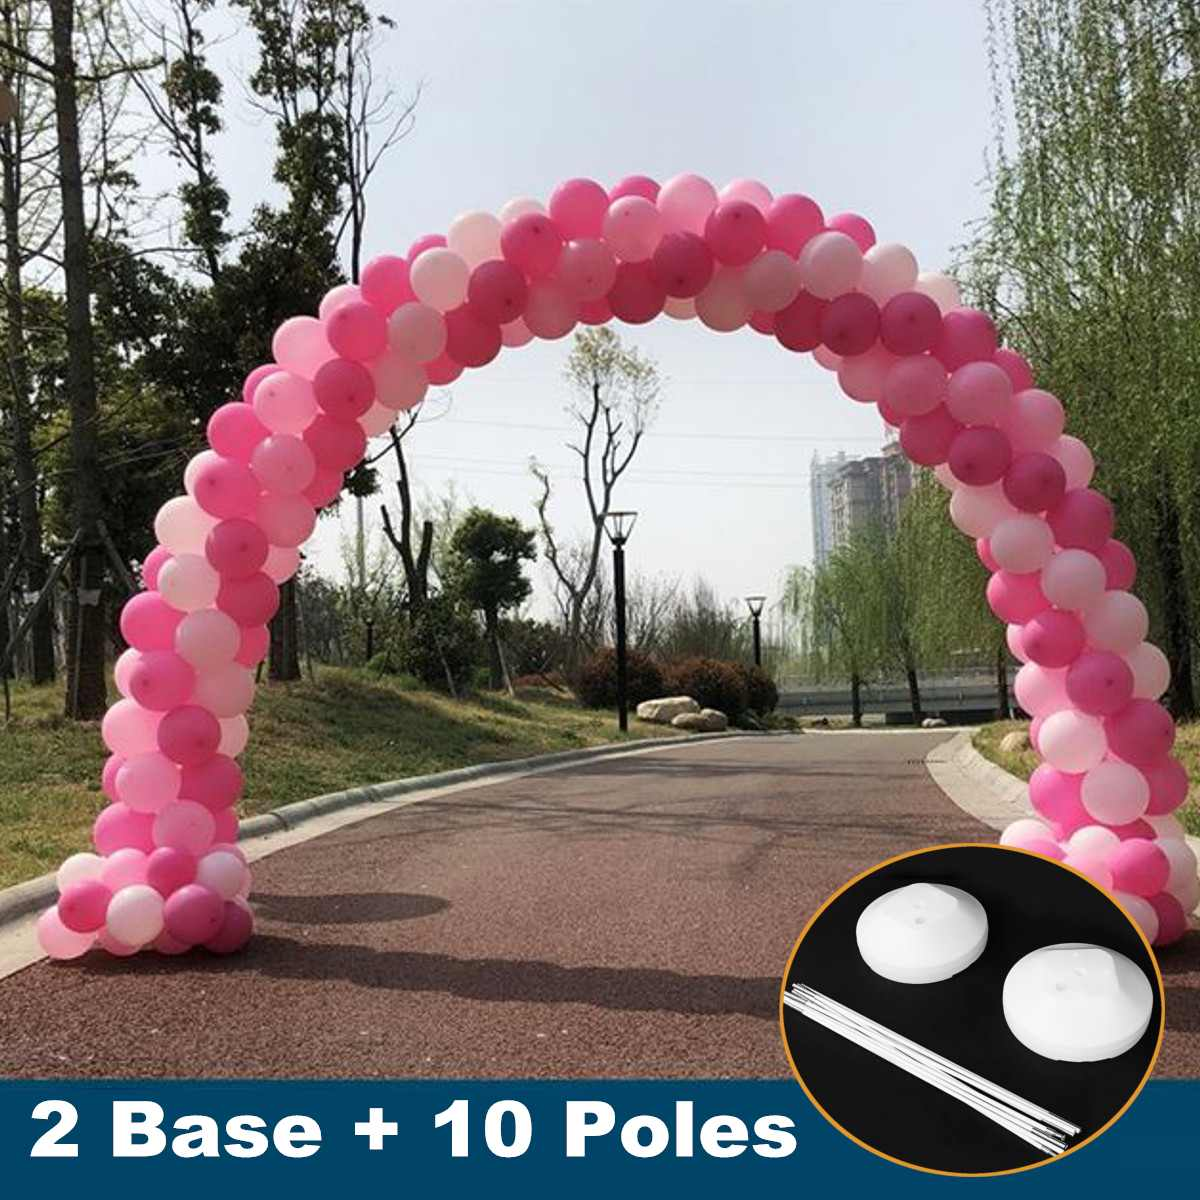 2PCS Balloon Columns Arch Pole Base Display Stand Rods Kit Set DIY Festive Party Wedding Decoration Balloons Accessories Kit